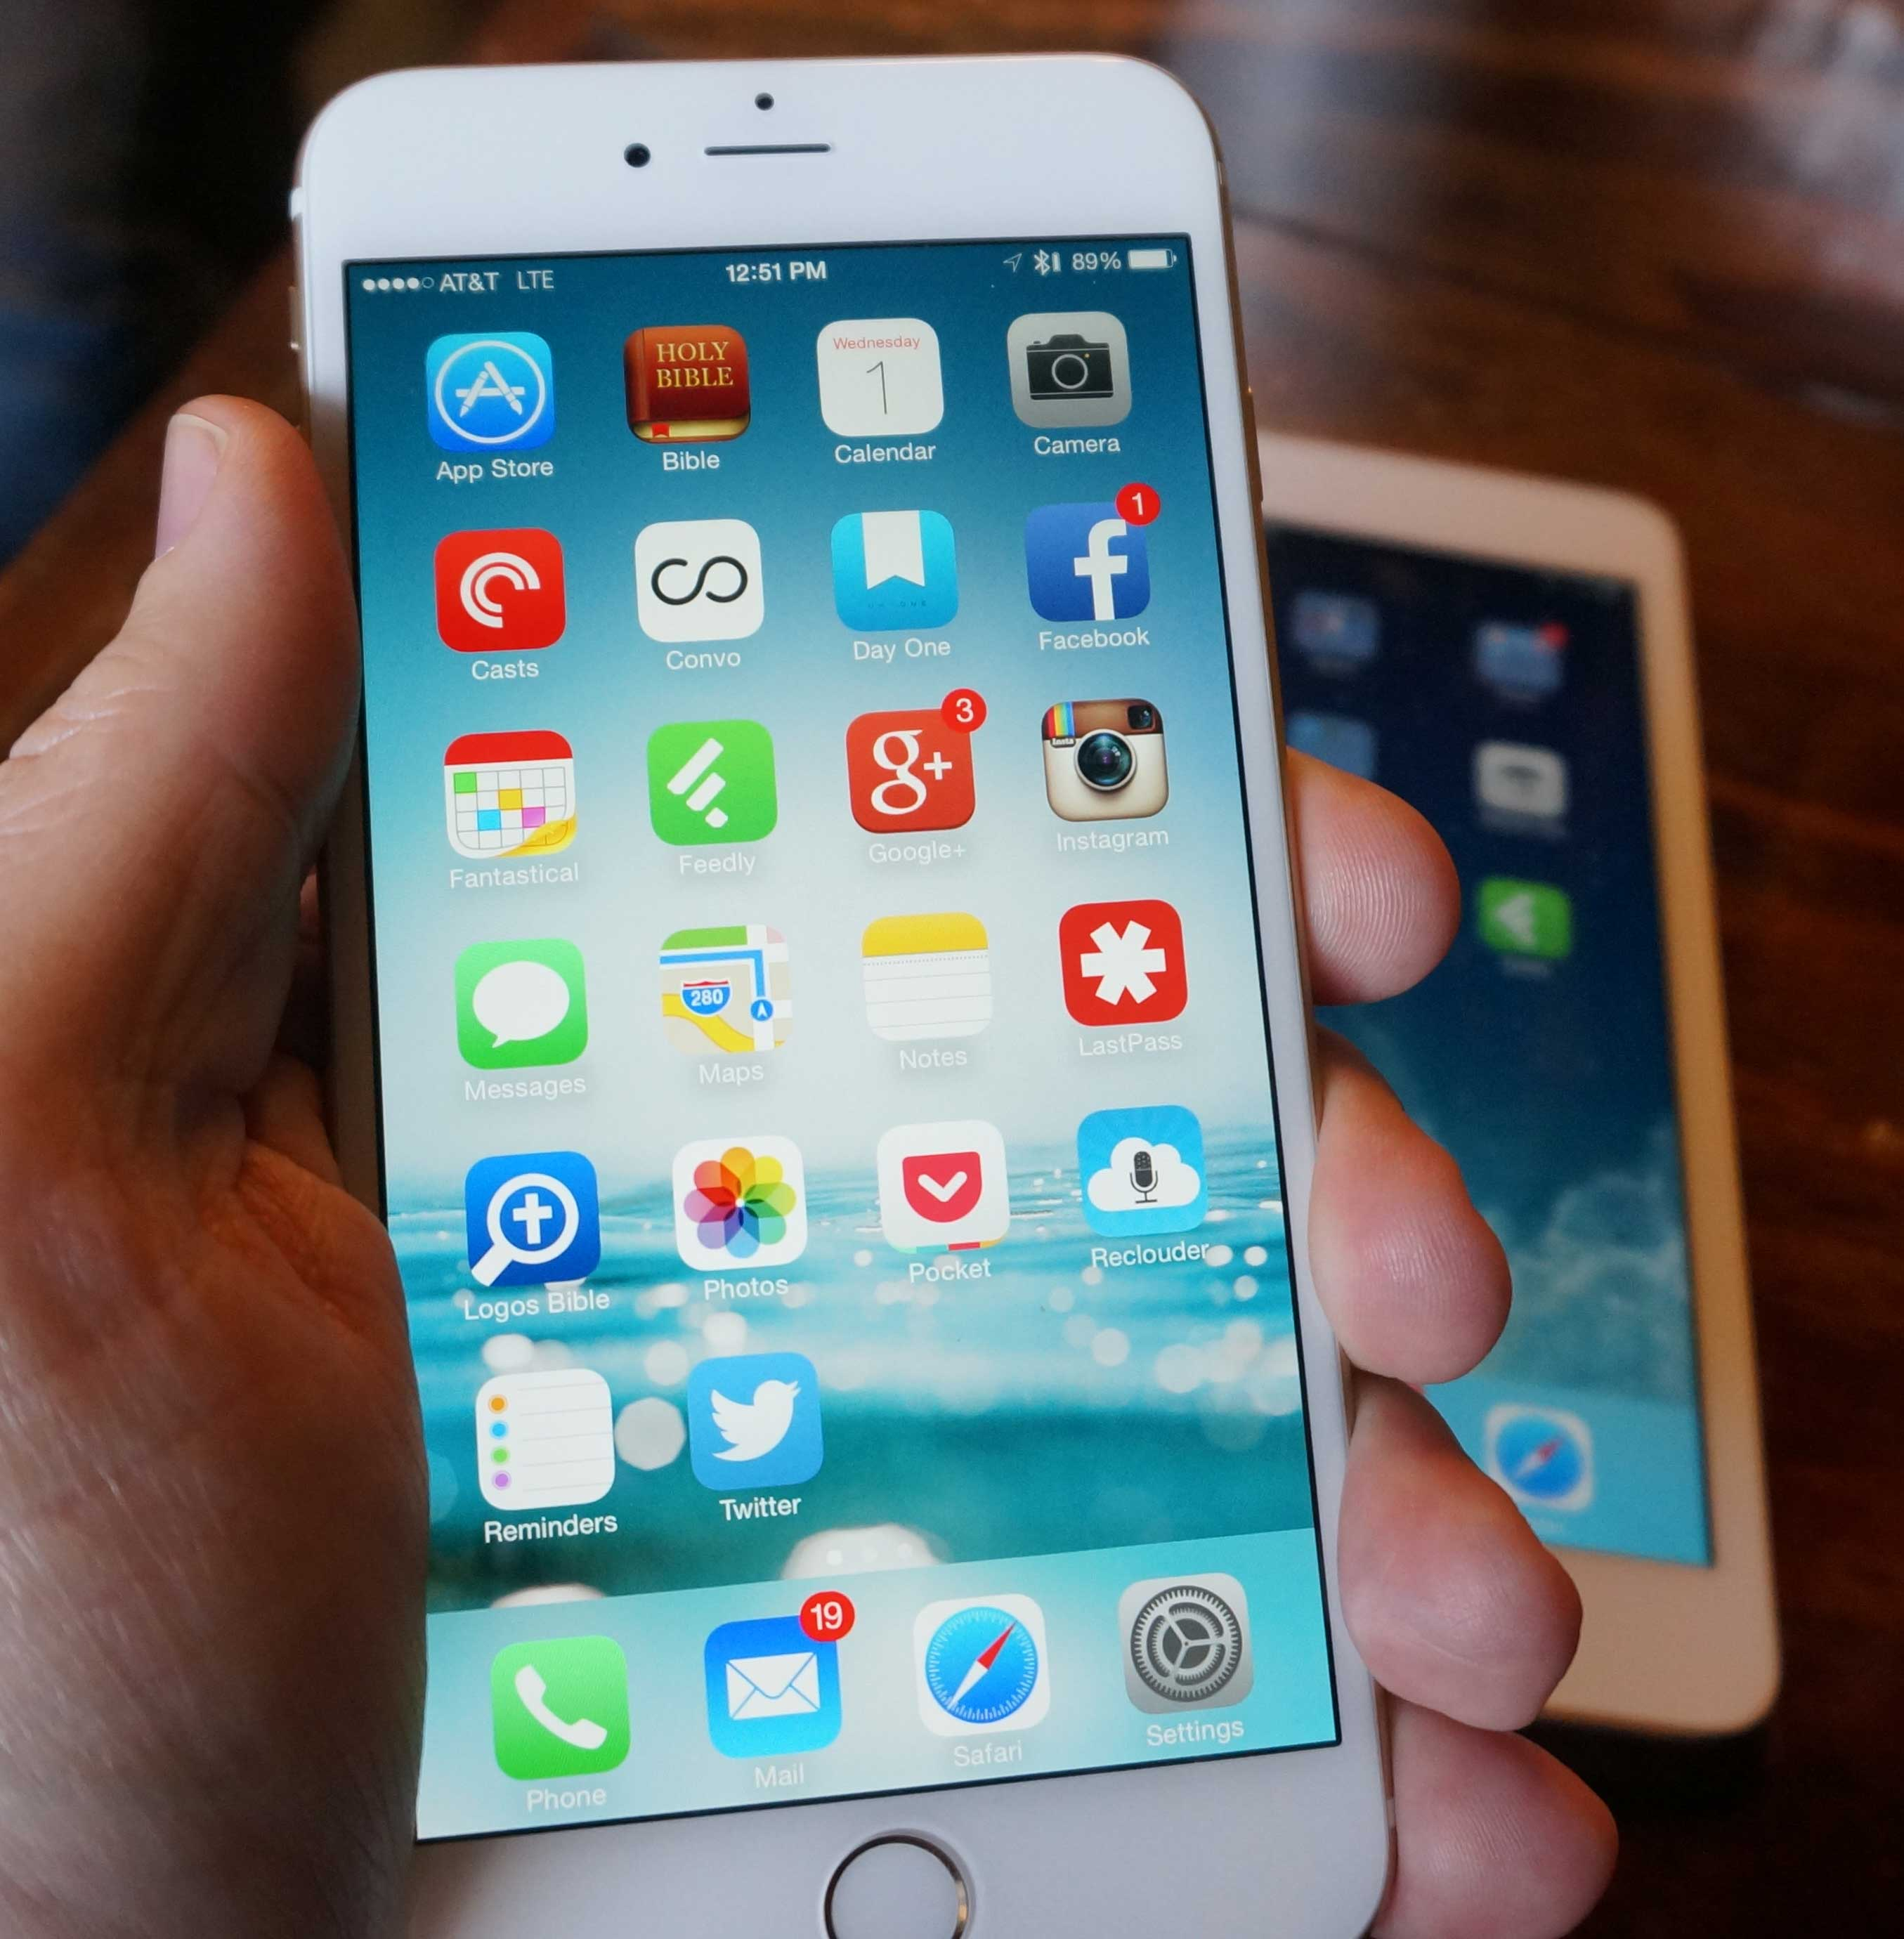 Appleâs iOS 8.1 Update Out of the Bin â Hereâs what to Expect - Image 1